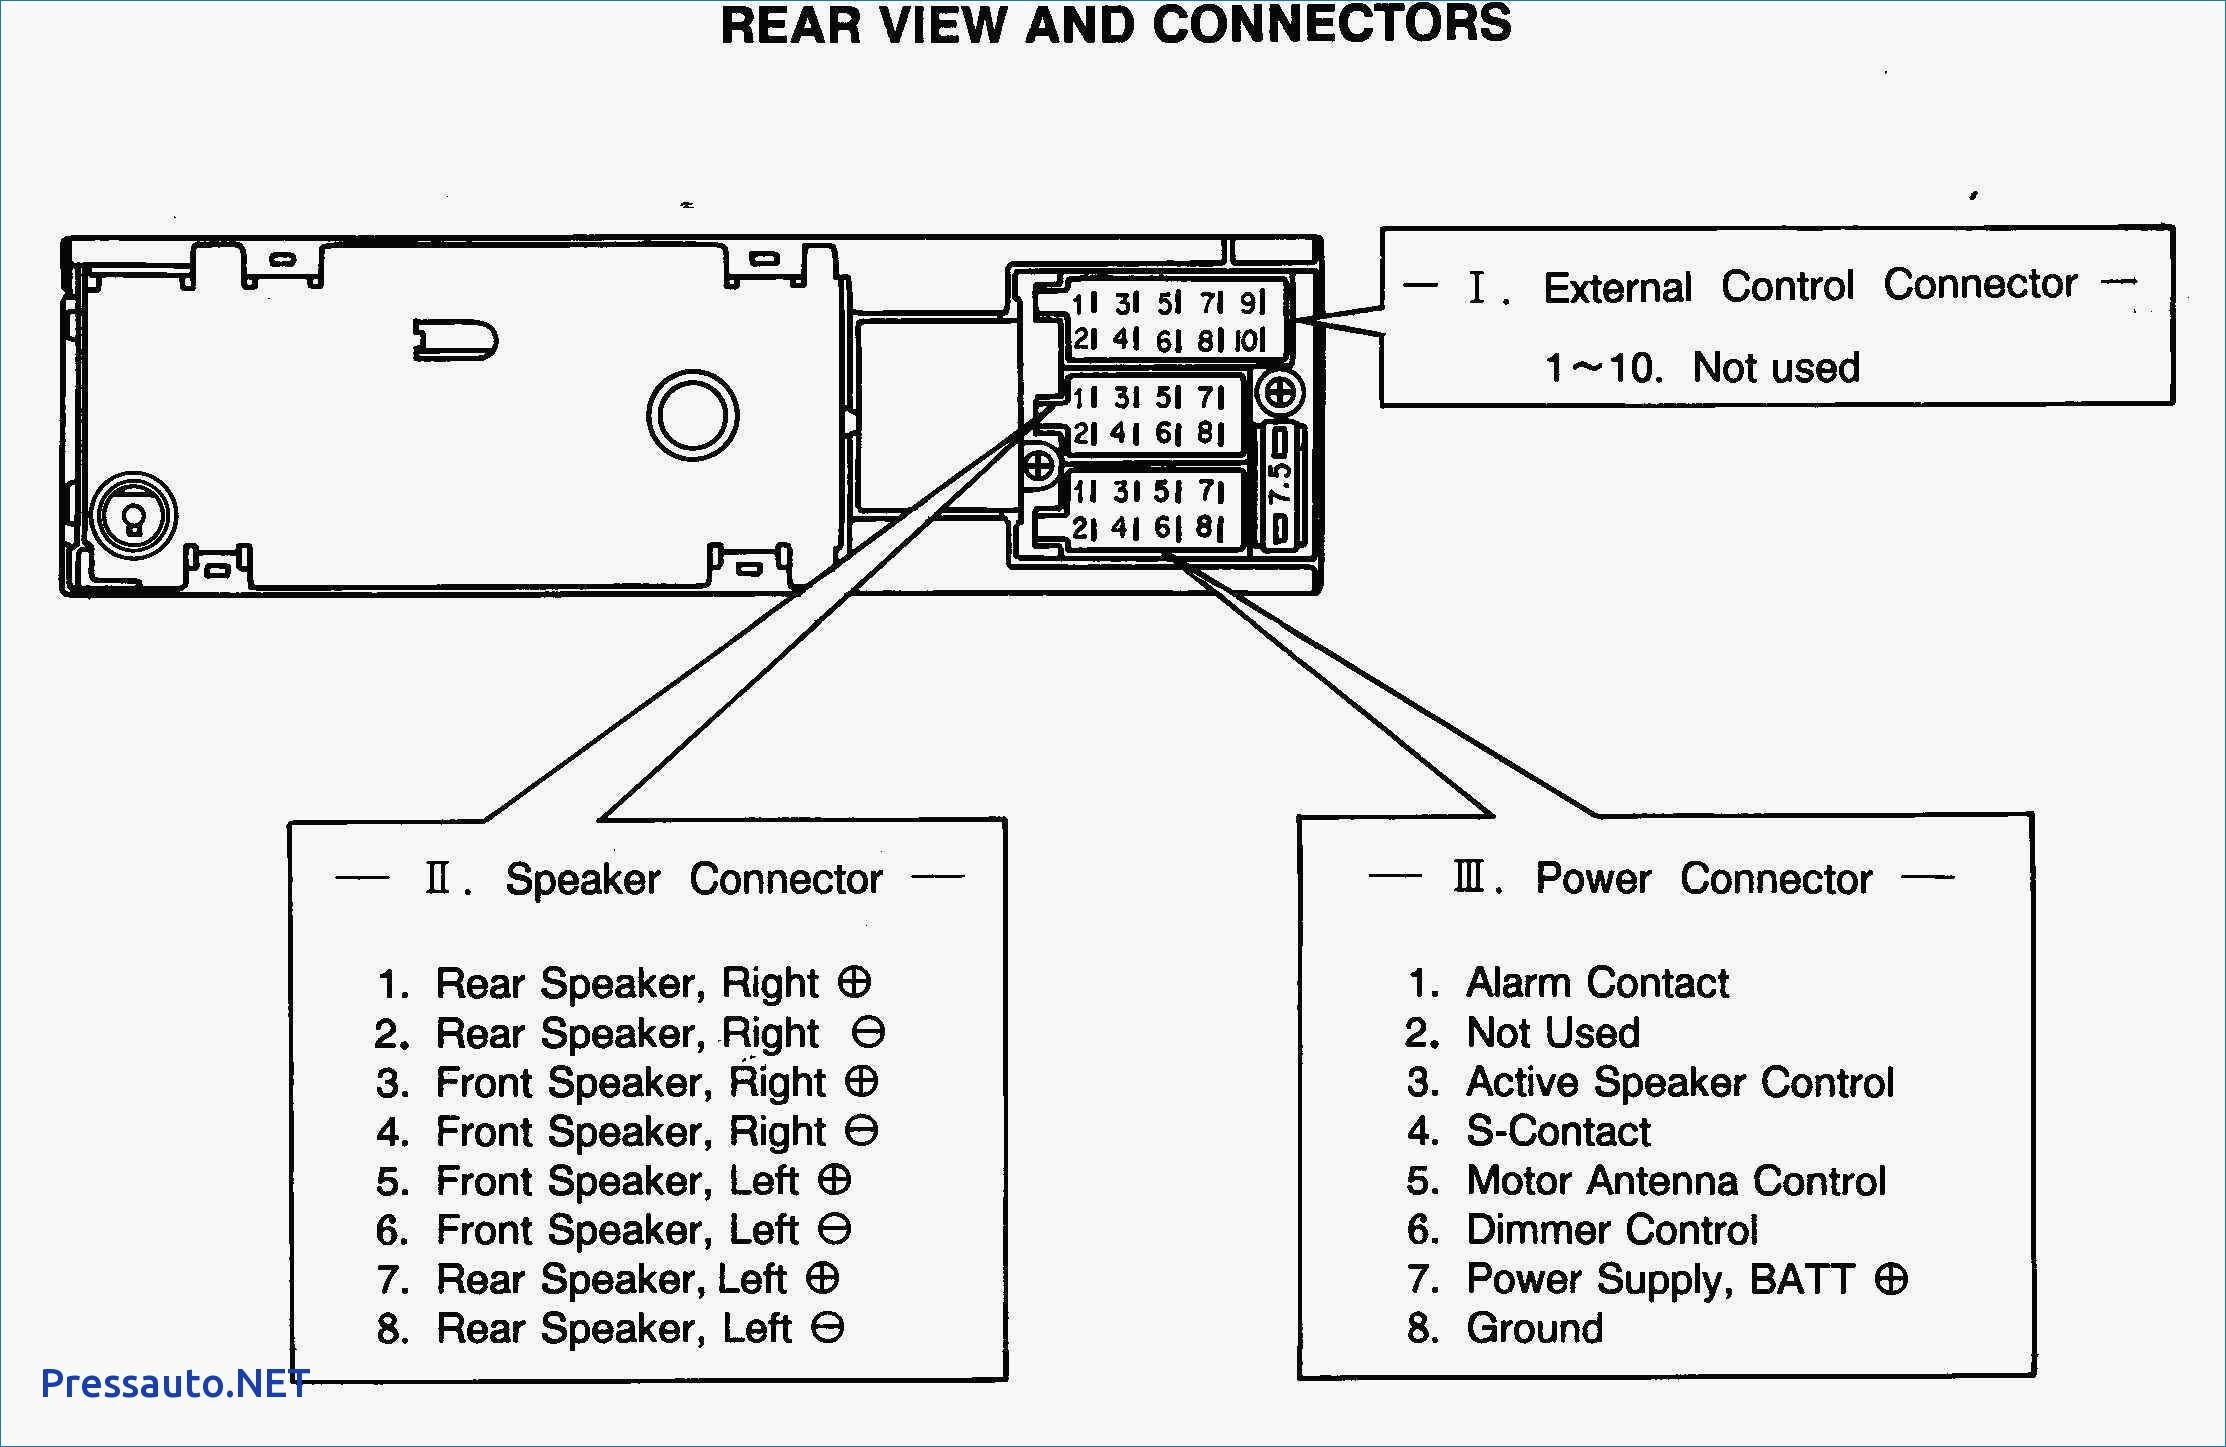 How To Hookup An Aftermarket Stereo In My Grand Marquis Of Ford Radio Wire Harness Color Codes together with  together with Ford Focus Radio Wiring Diagram Expedition Wire And Of Ford Focus Radio Wiring Diagram furthermore Car Audio Wiring Color Codes Pioneer Stereo Diagram In Addition To Electronics Wellness Within Radio S further Wiring Diagram Car Audio Wiring Diagrams For Pioneer Wiring Of Car Audio Wire Diagram. on kenwood car stereo wiring diagrams